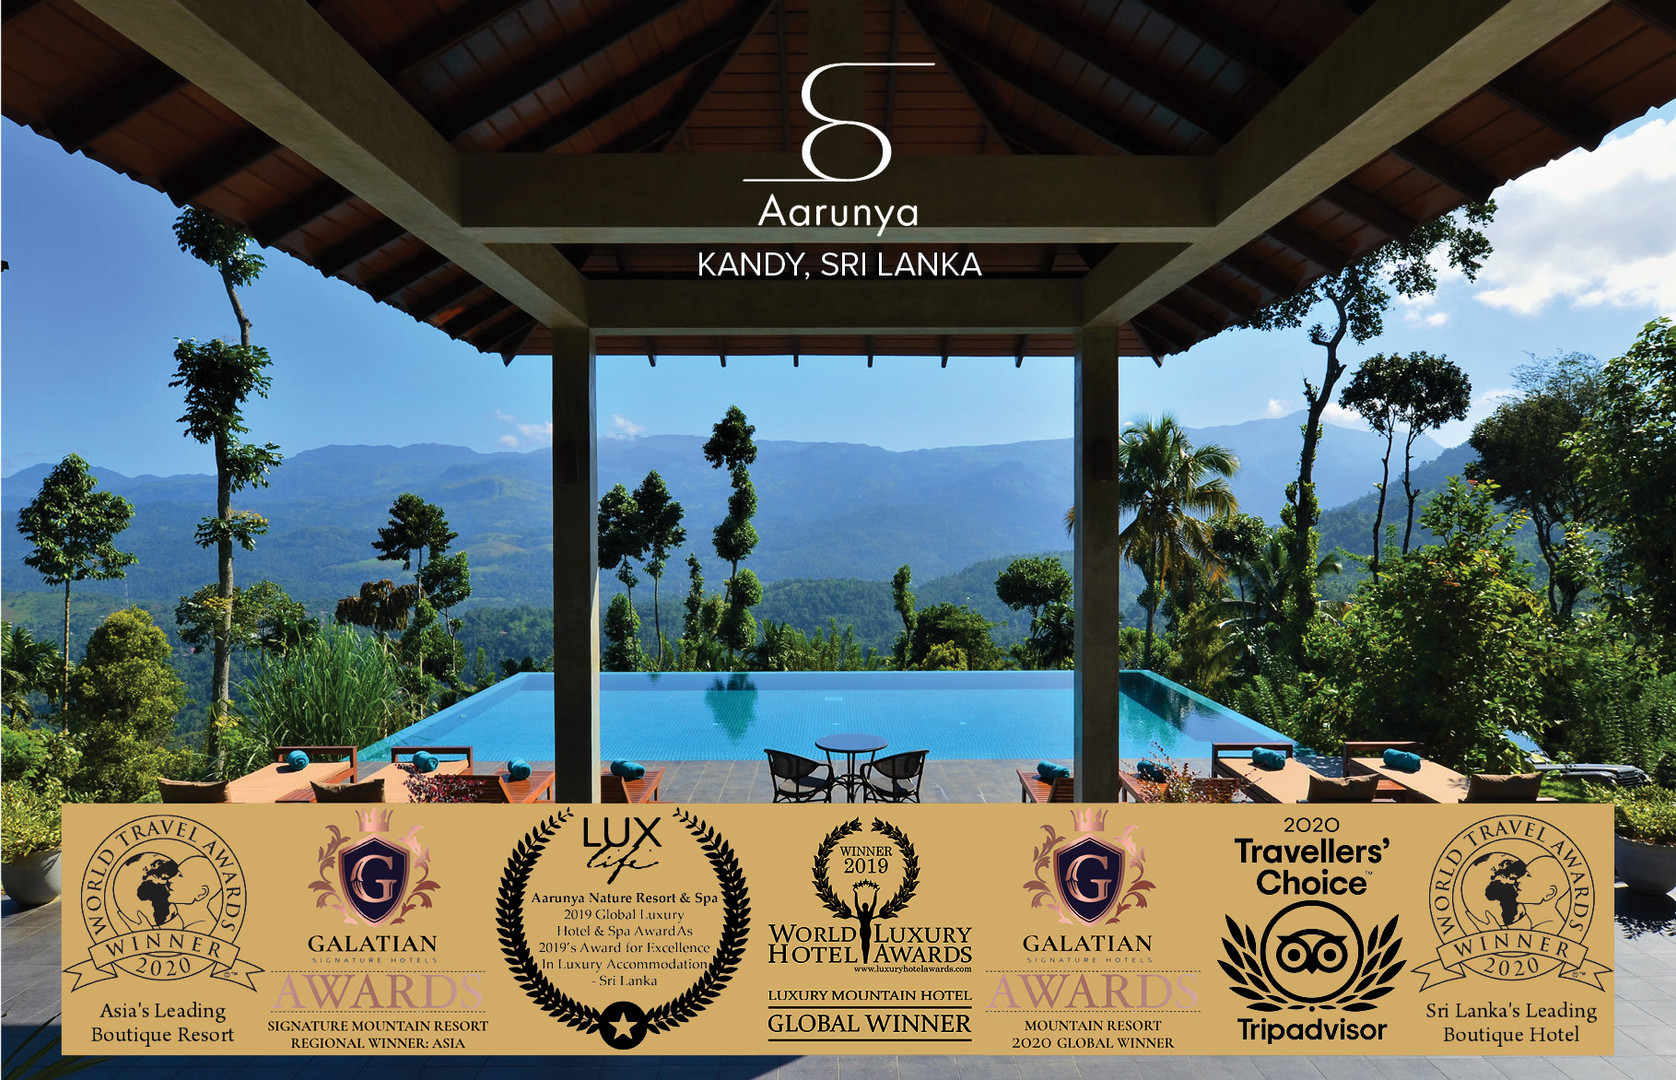 Aarunya is a Global Award Winning Hotel Resort